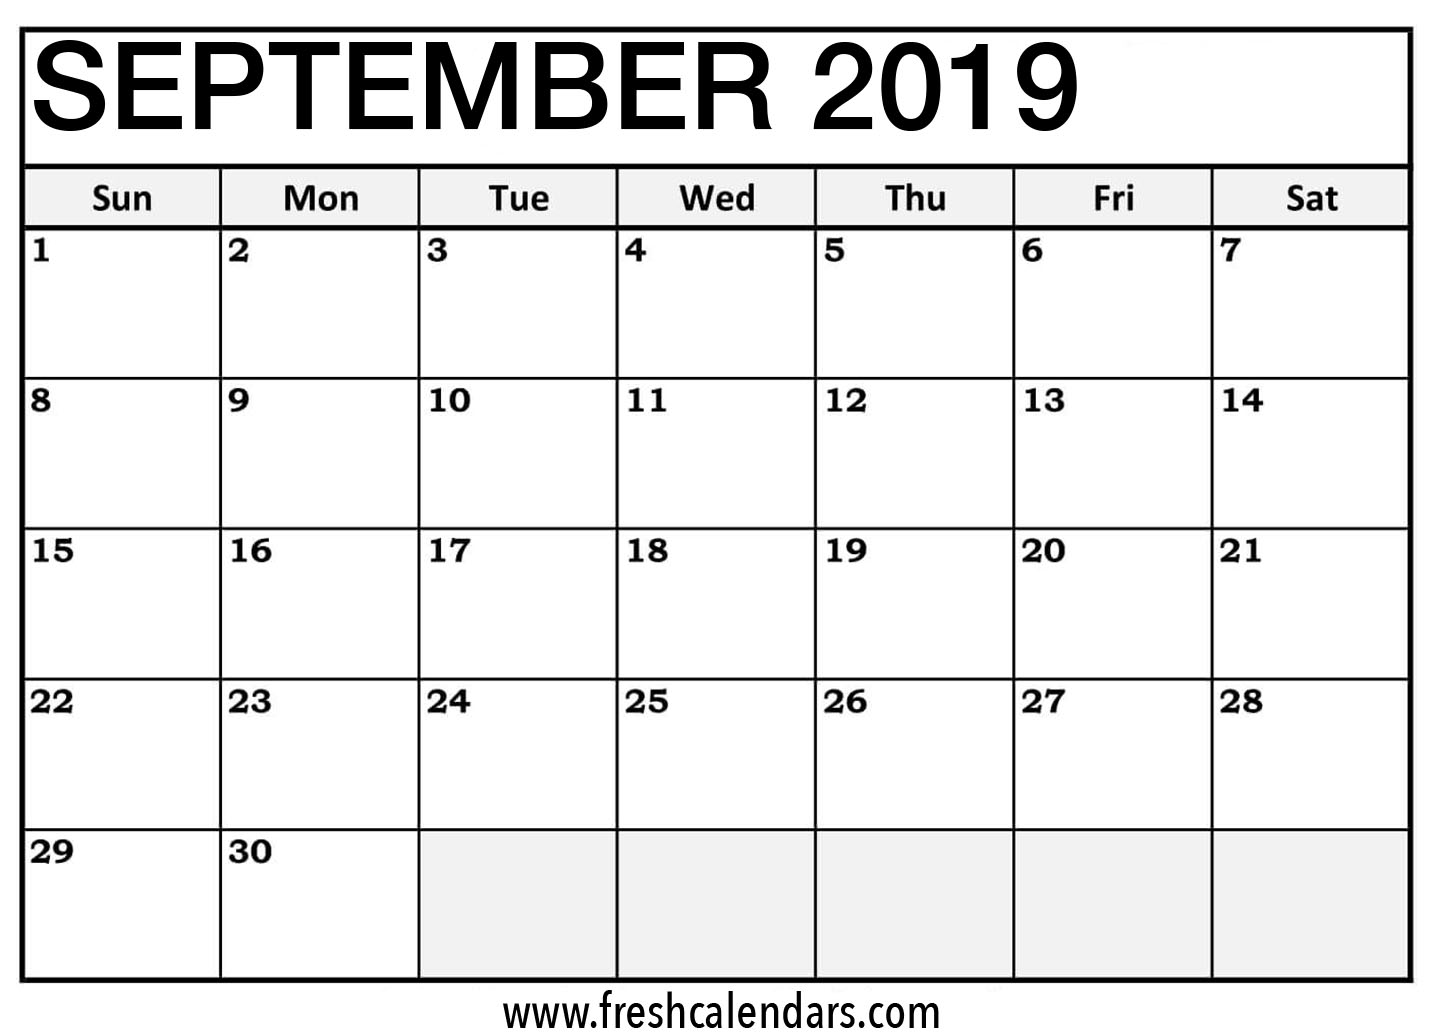 Sep 2019 Calendar Printable Templates